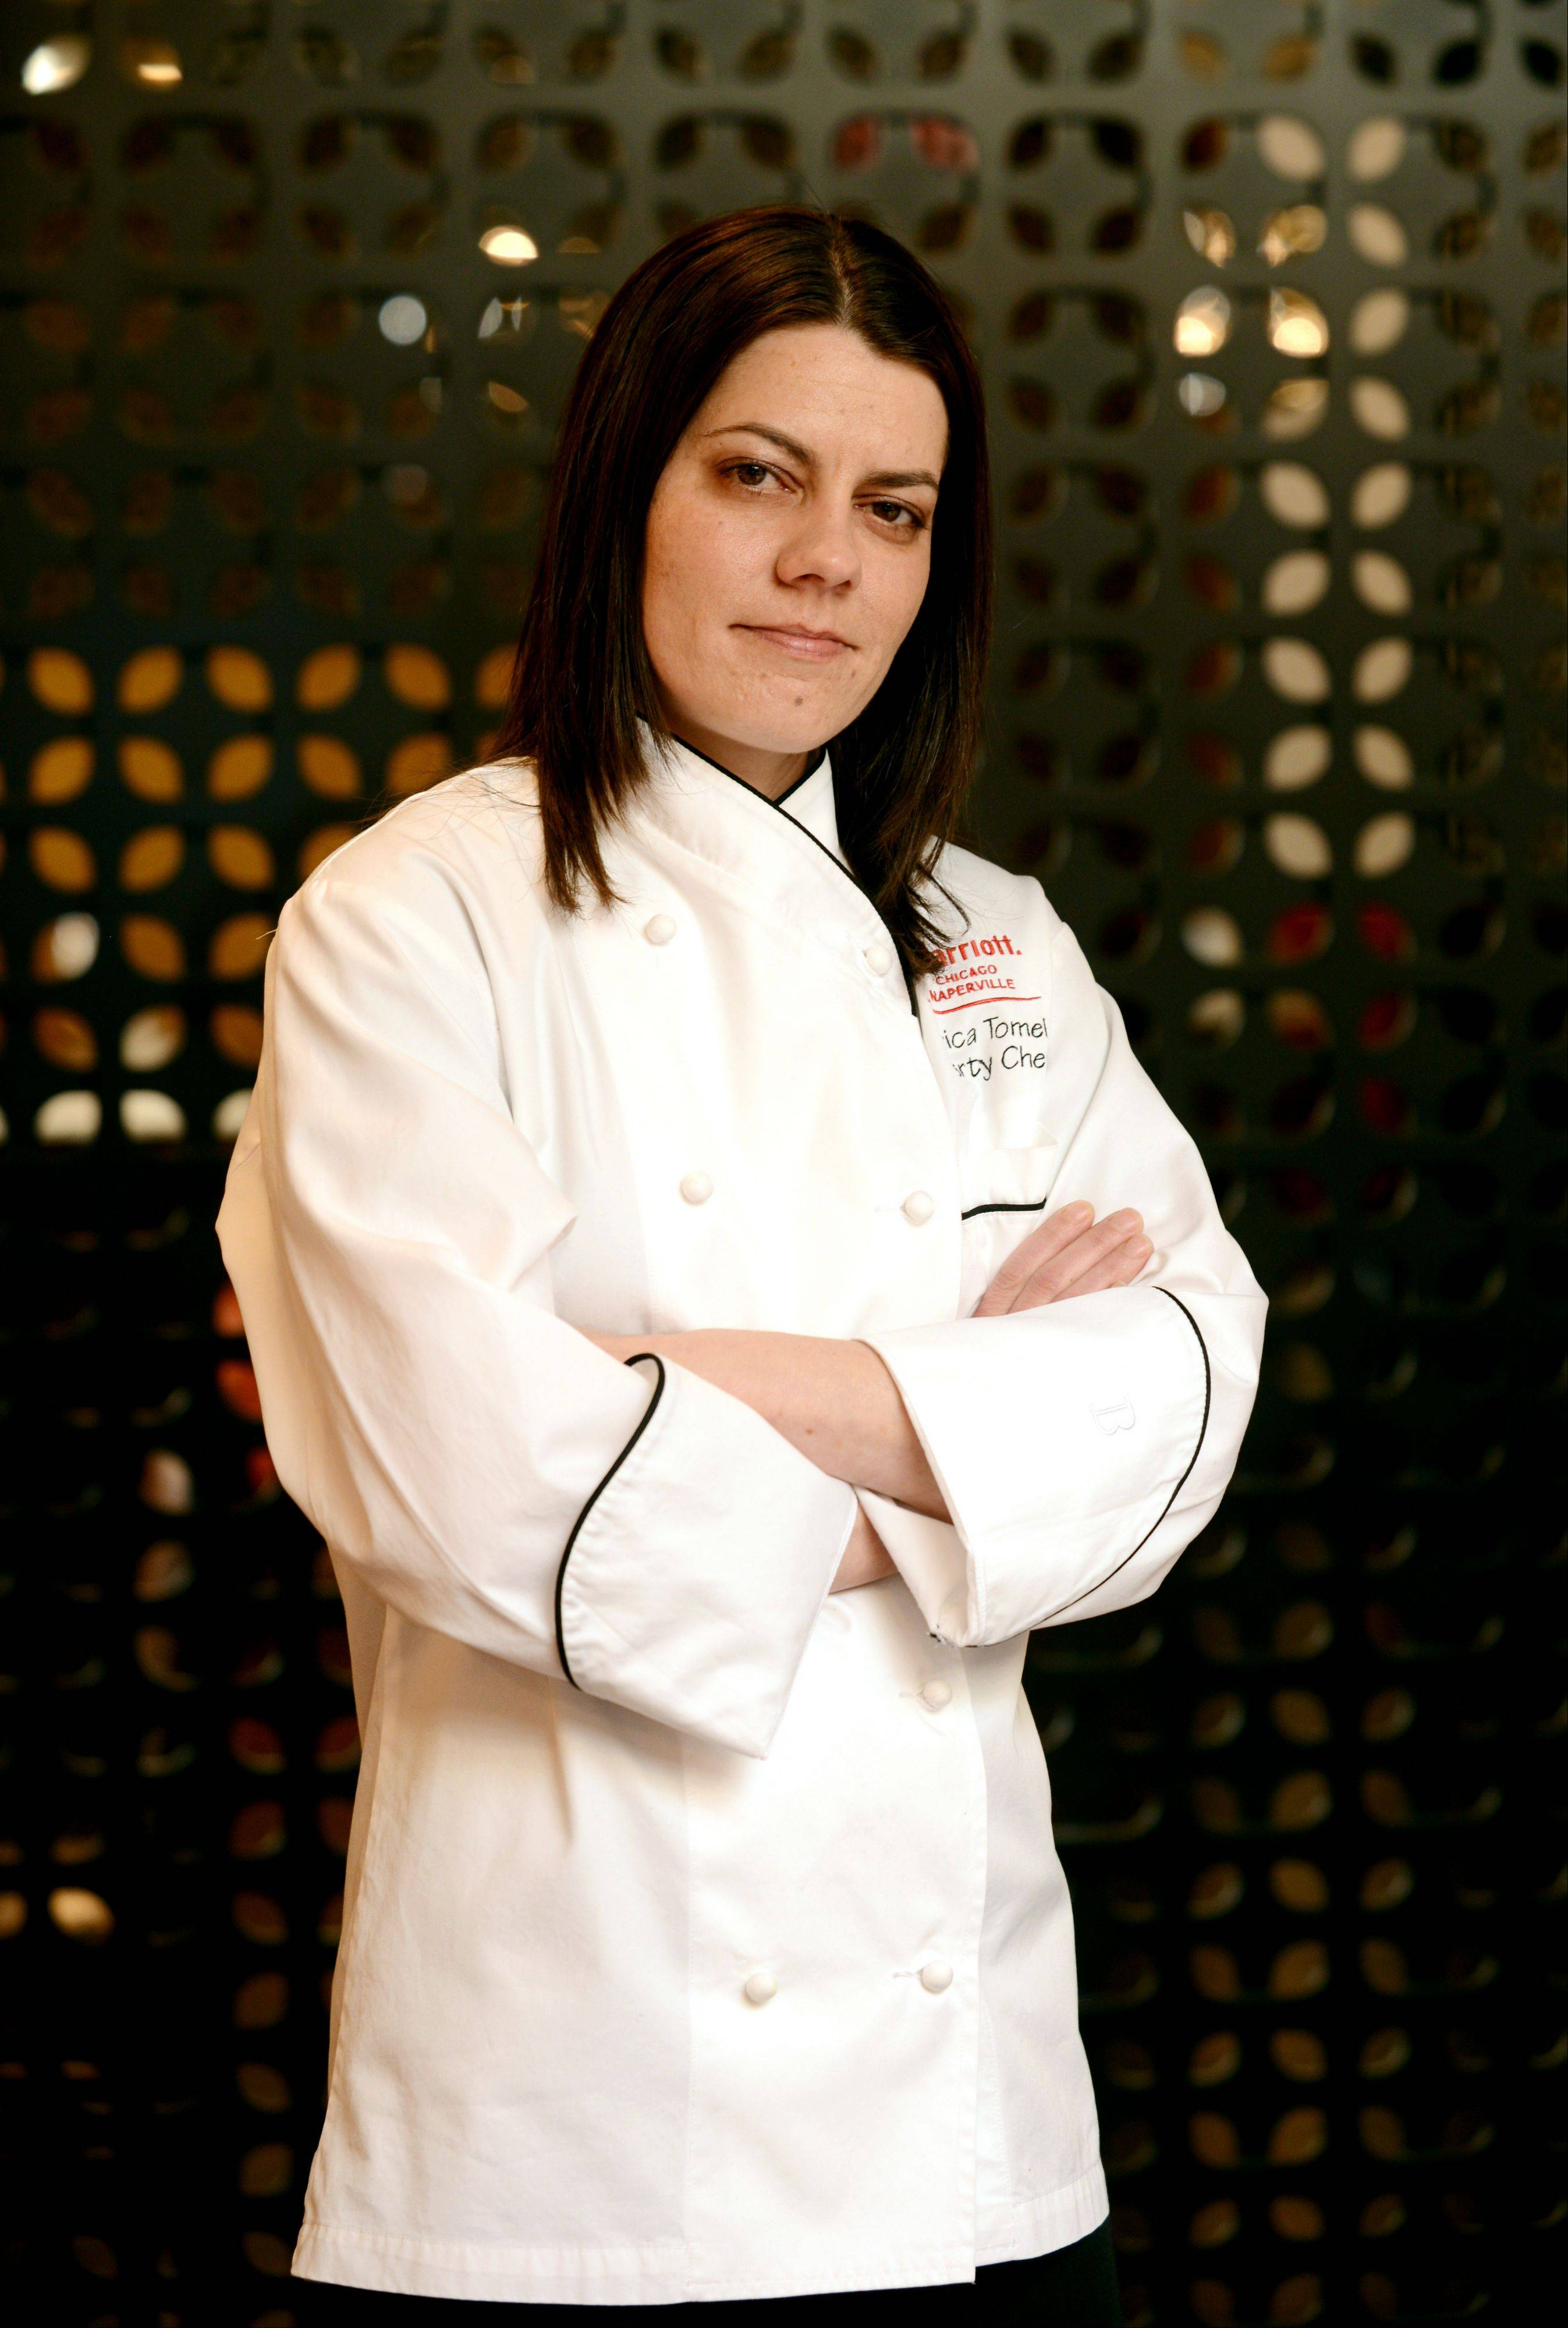 Chef Erica Tomei runs the pastry kitchens at the Chicago Marriott Naperville.